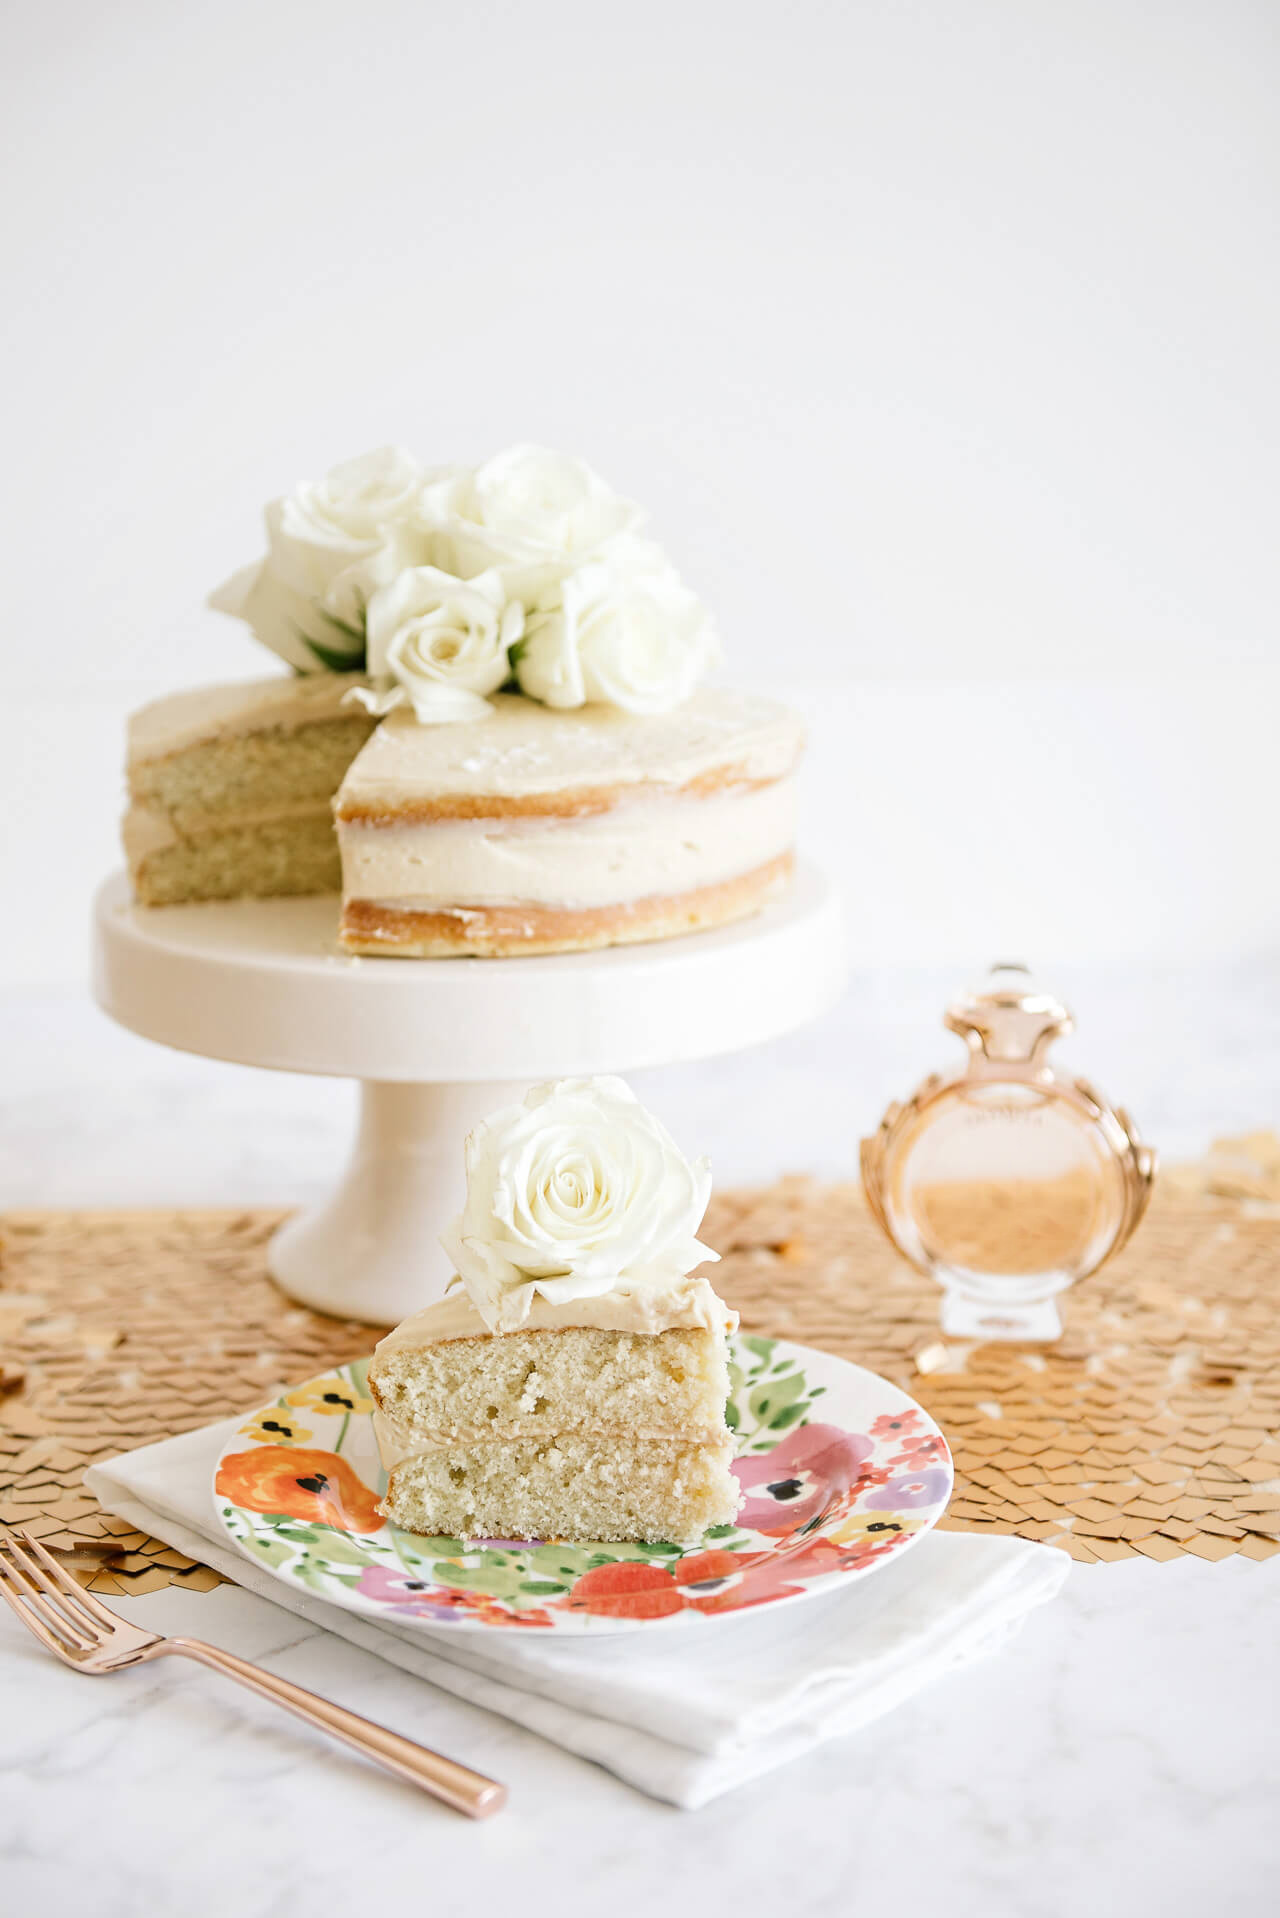 recipe for Sweet and Salty Vanilla Bean Cake with Caramel Frosting